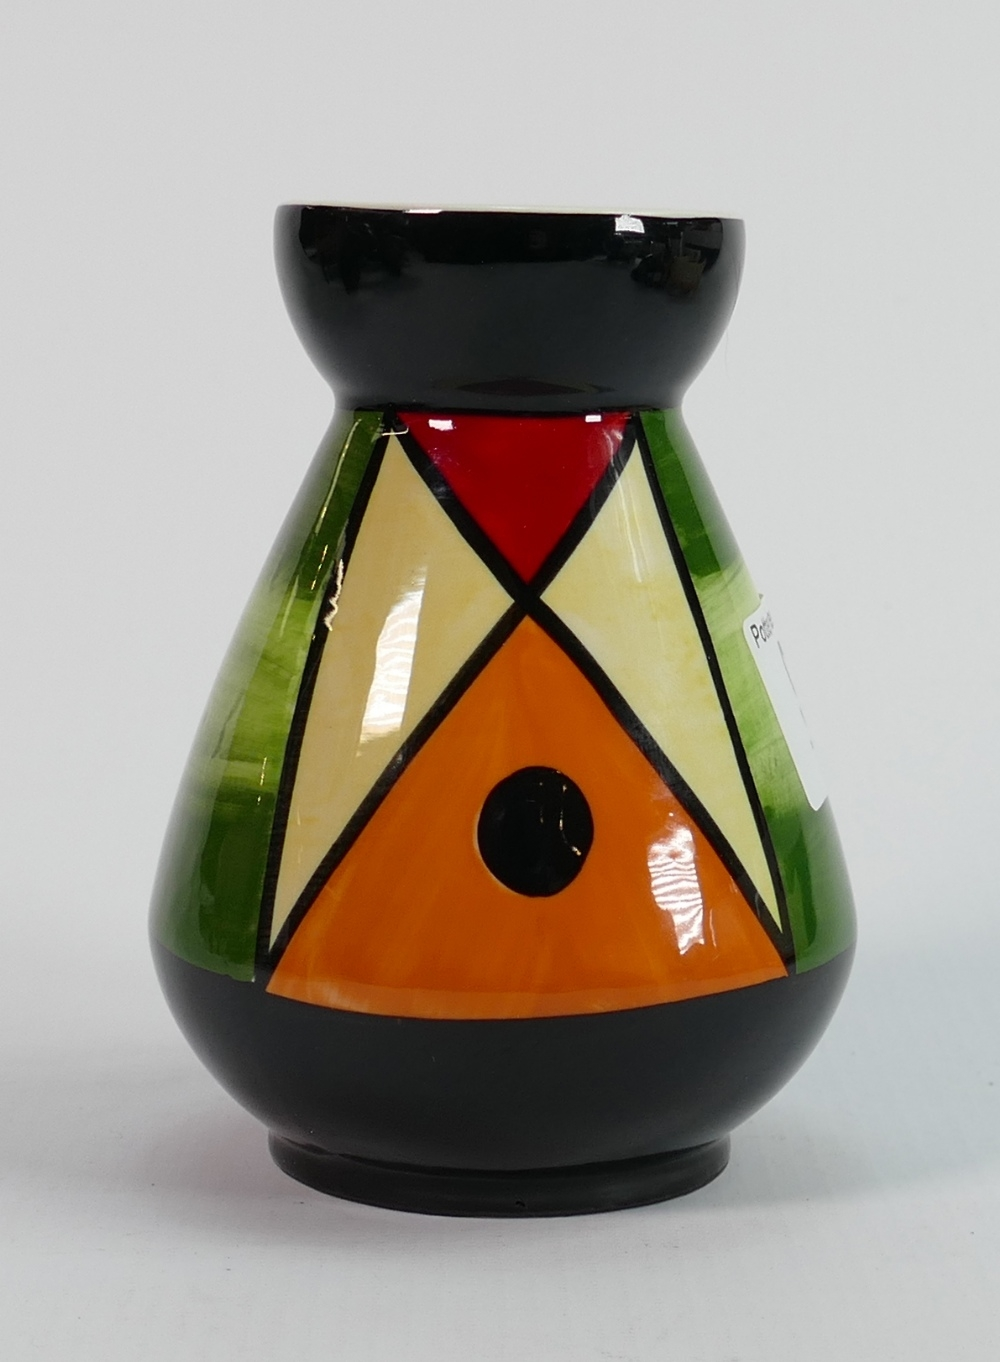 Lorna Bailey limited edition vase 2/2: 12cm high. - Image 2 of 2